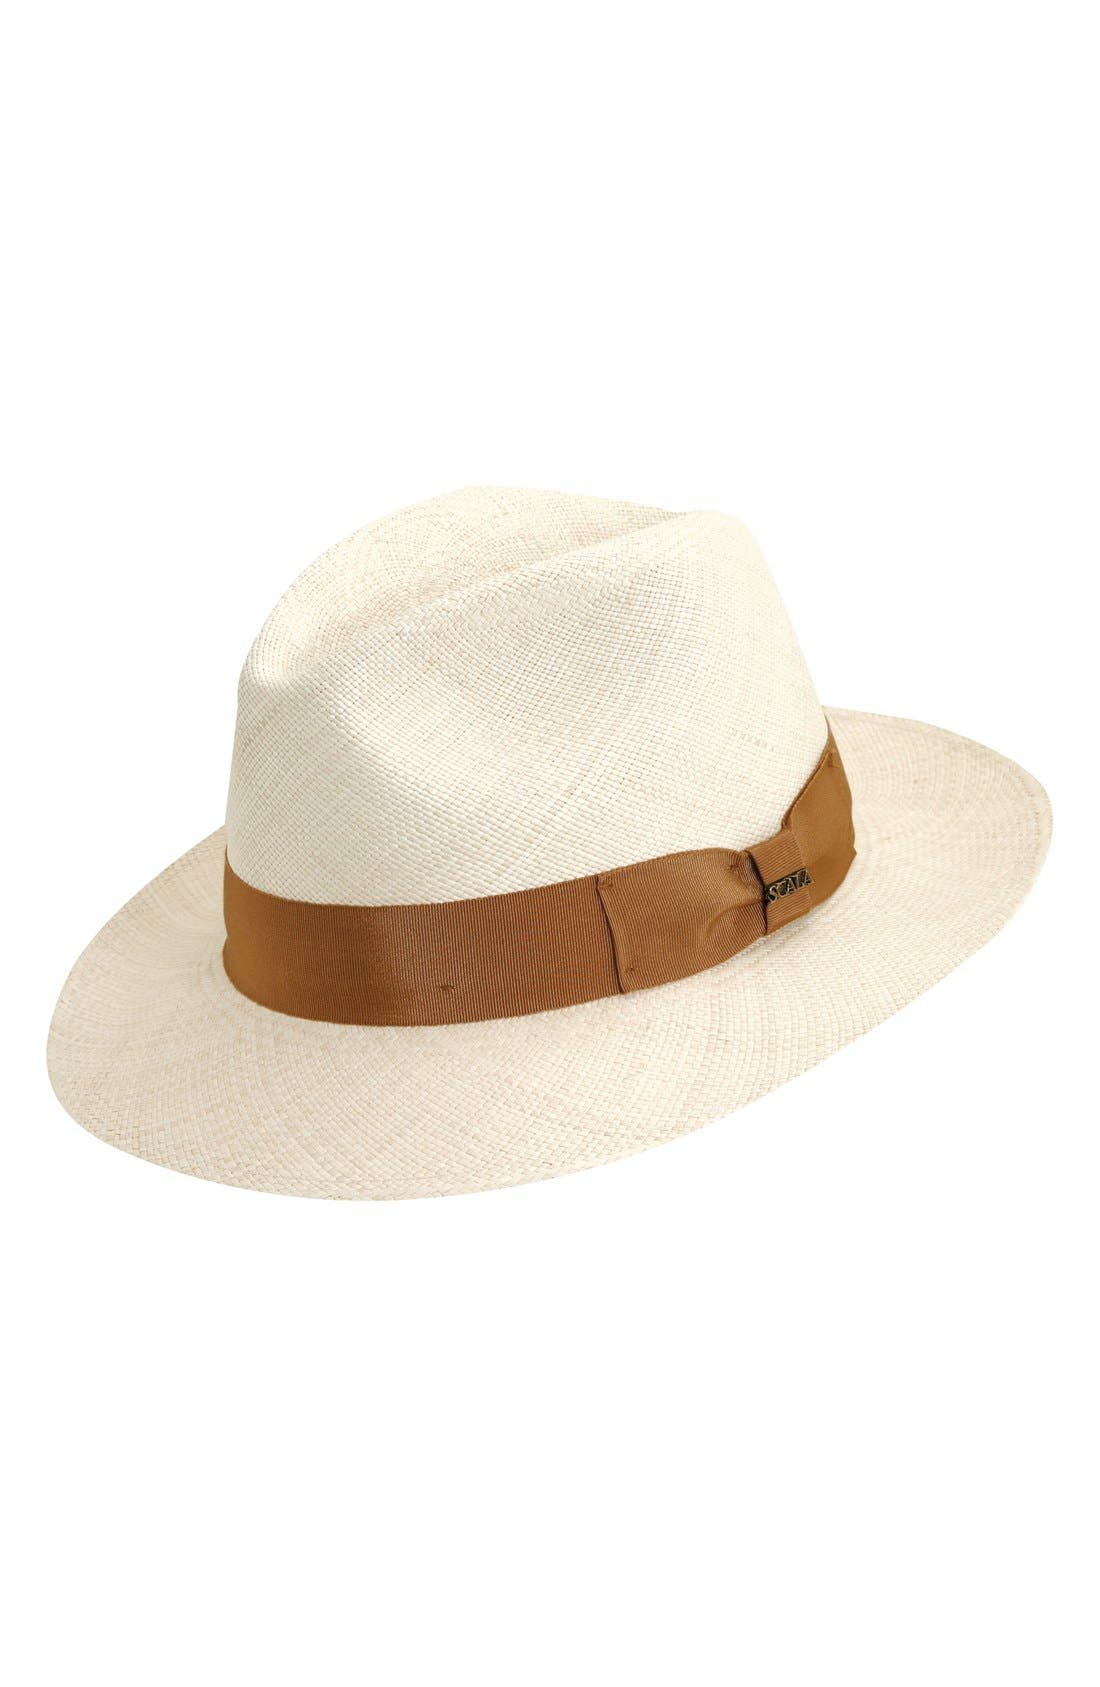 Alternate Image 1 Selected - Scala Straw Safari Hat